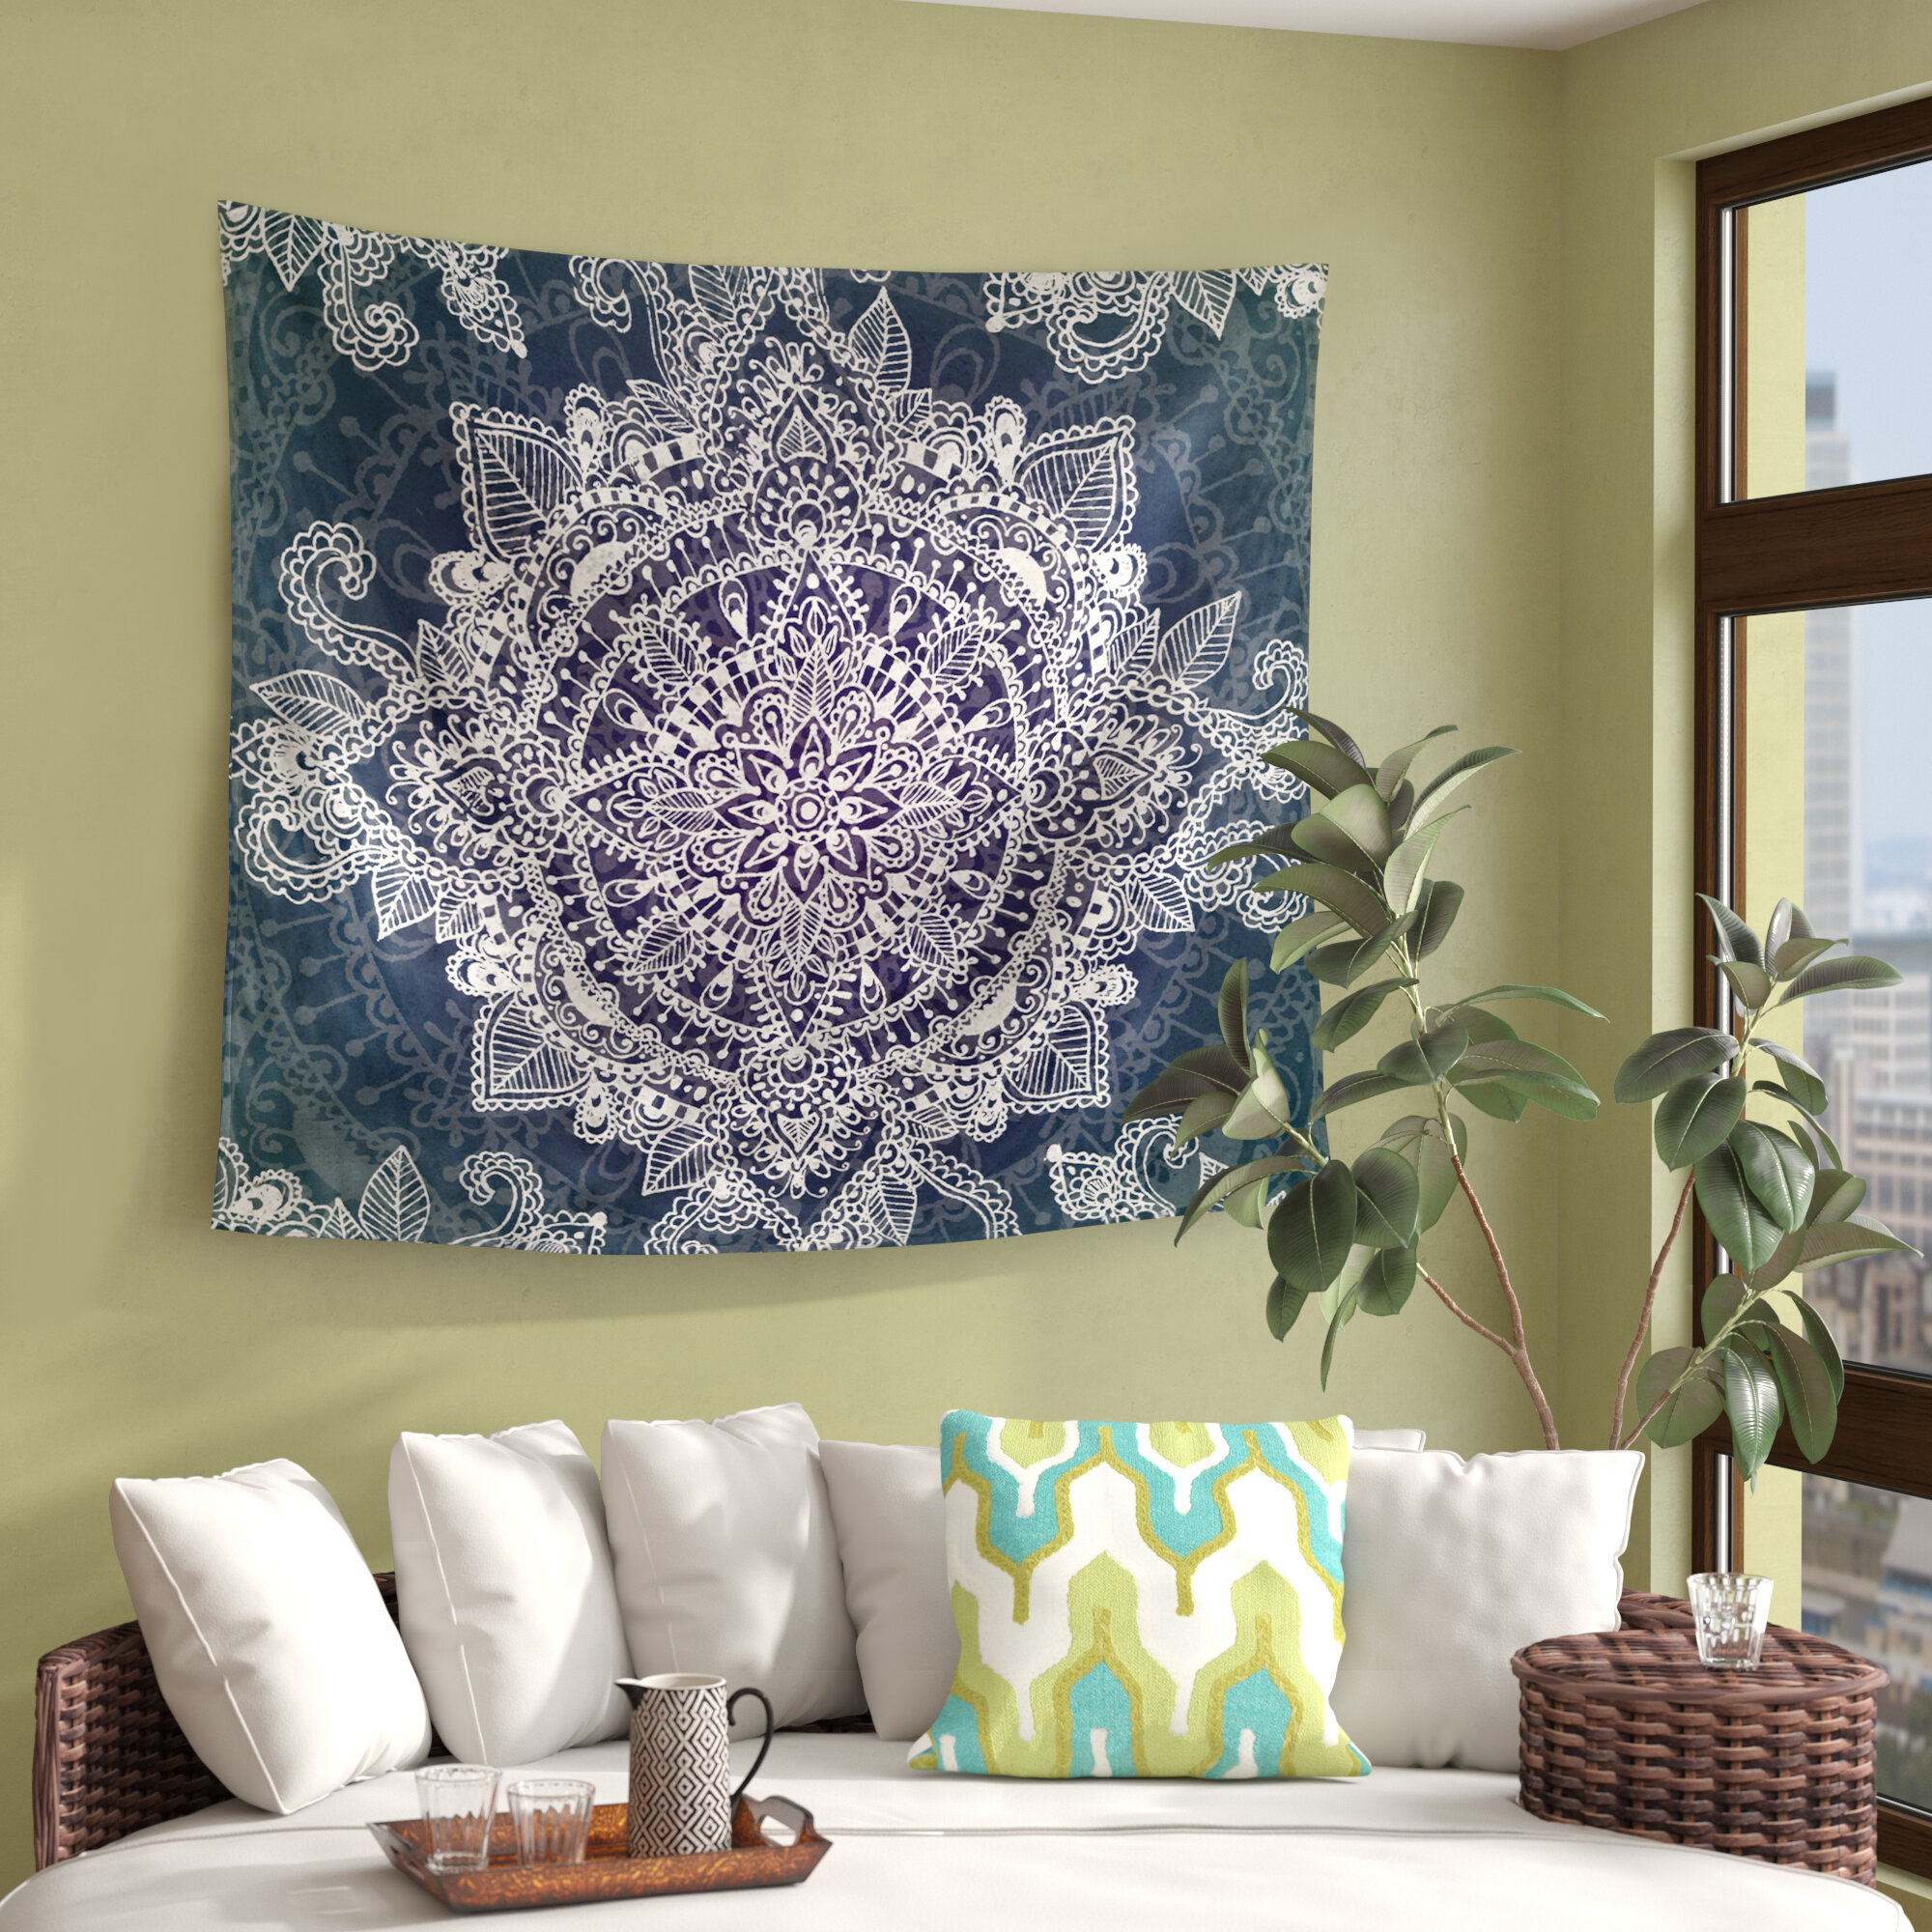 Black Tapestries You'll Love In 2021 | Wayfair In Best And Newest Blended Fabric Spring Party Wall Hangings (View 18 of 20)